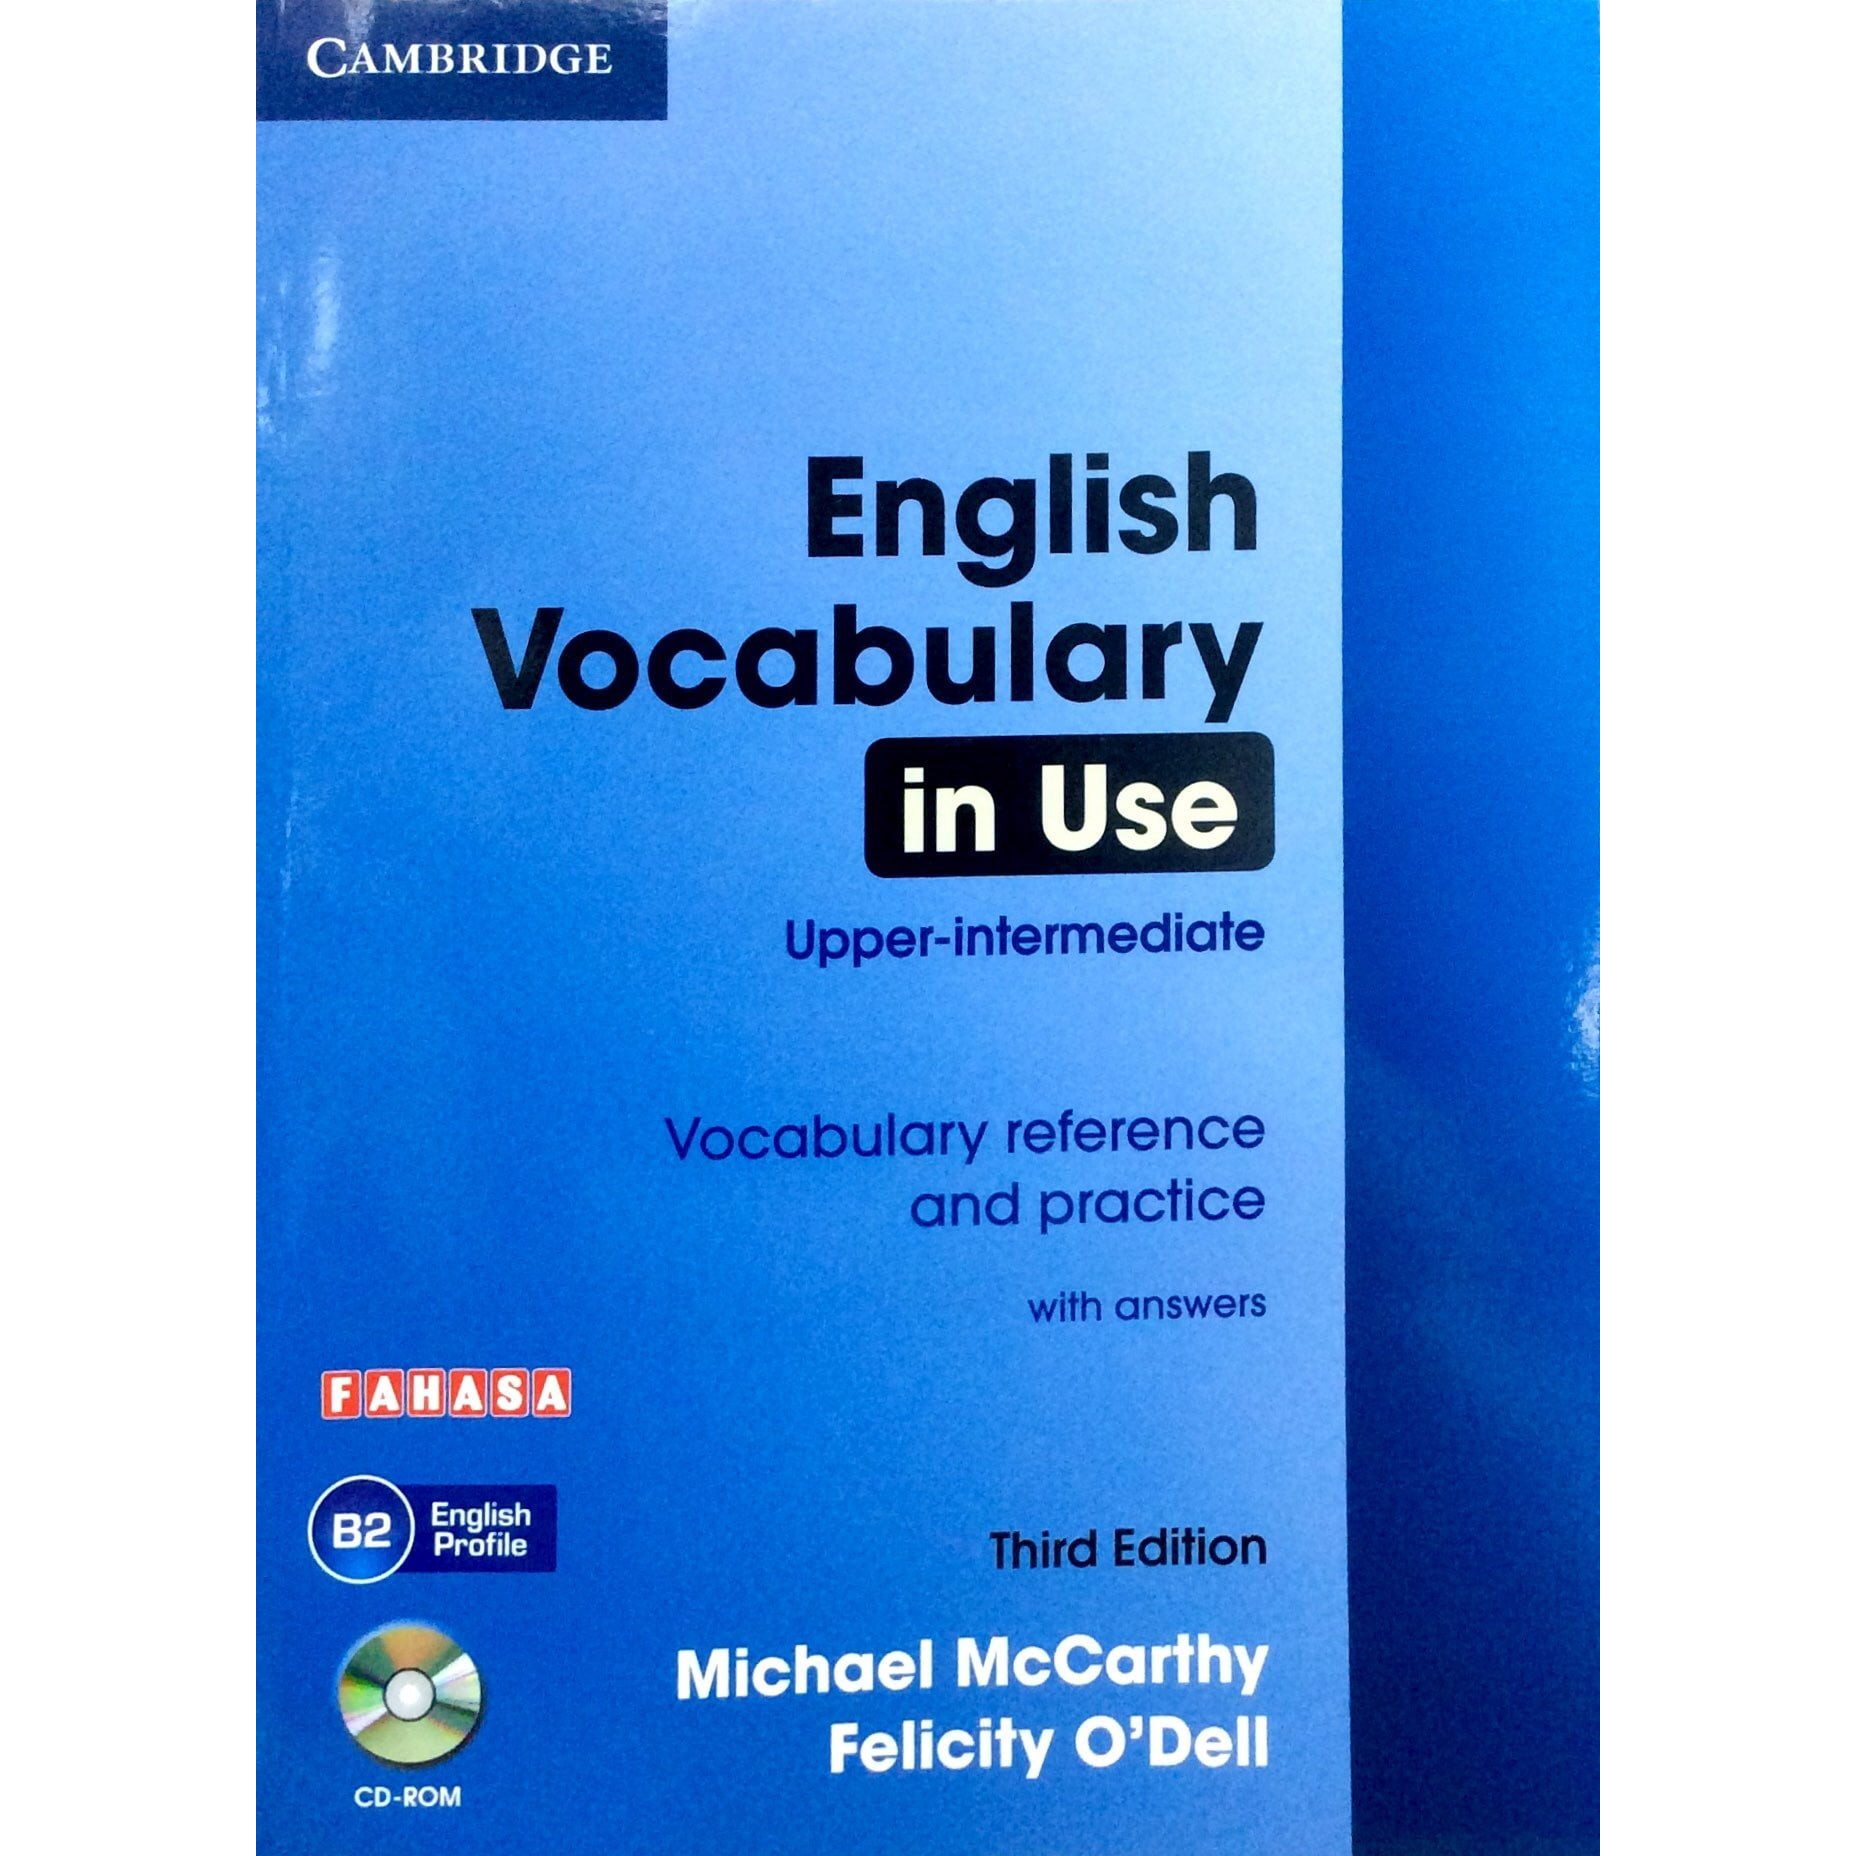 English Vocabulary in Use: Upper-Intermediate Book with Answers Reprint Edition: Vocabulary Reference and Practice